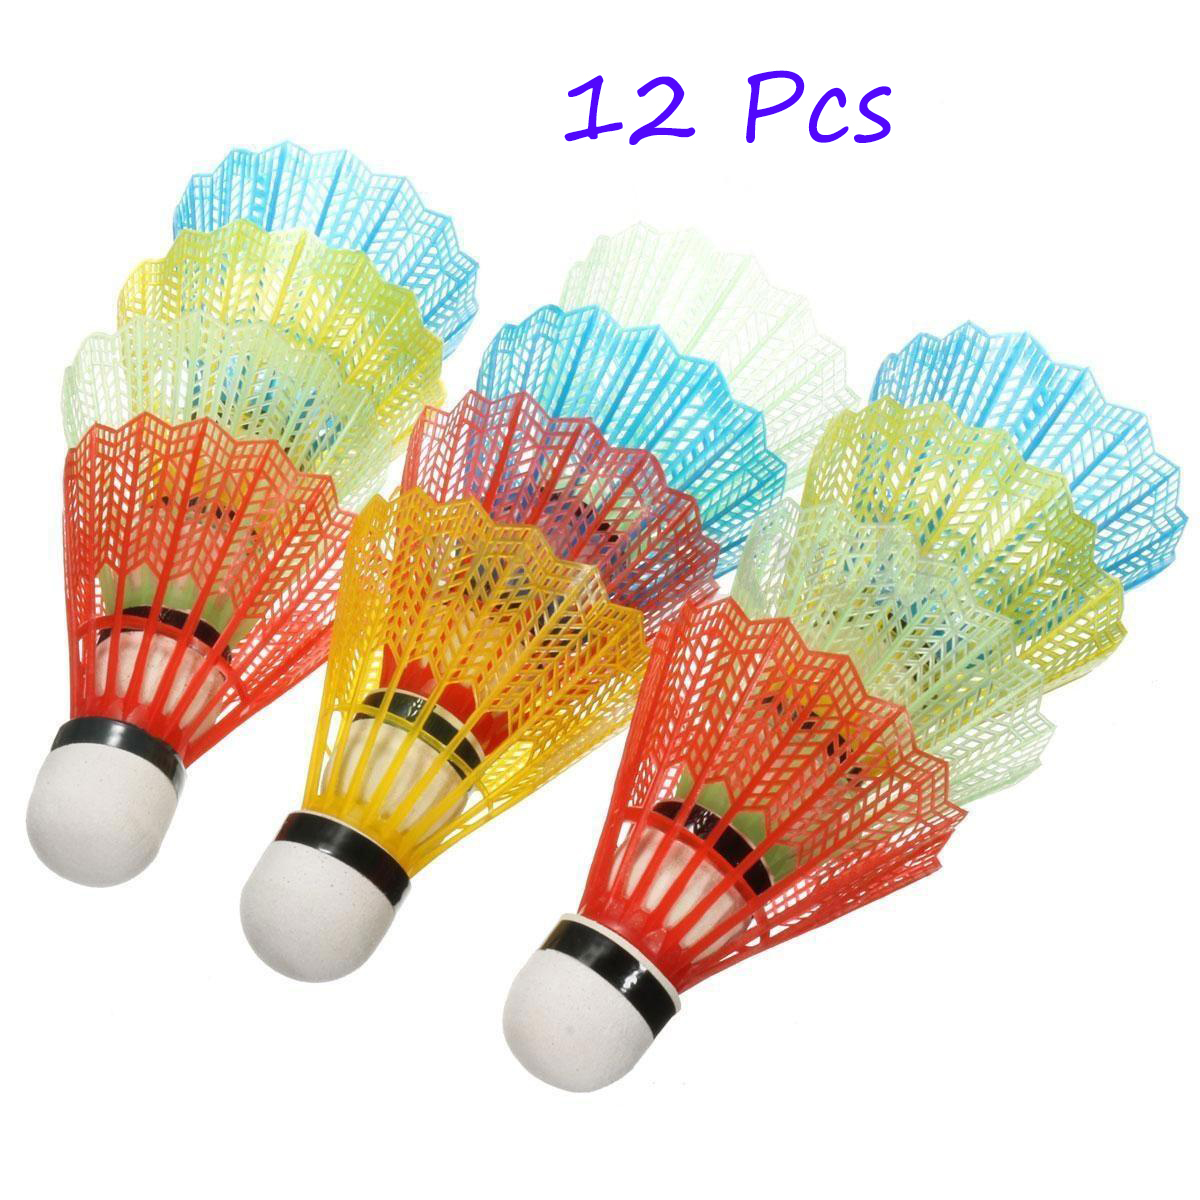 12pcs Colorful Badminton Balls Portable Shuttlecocks Products Sport Training Train Outdoor Supplies(China)